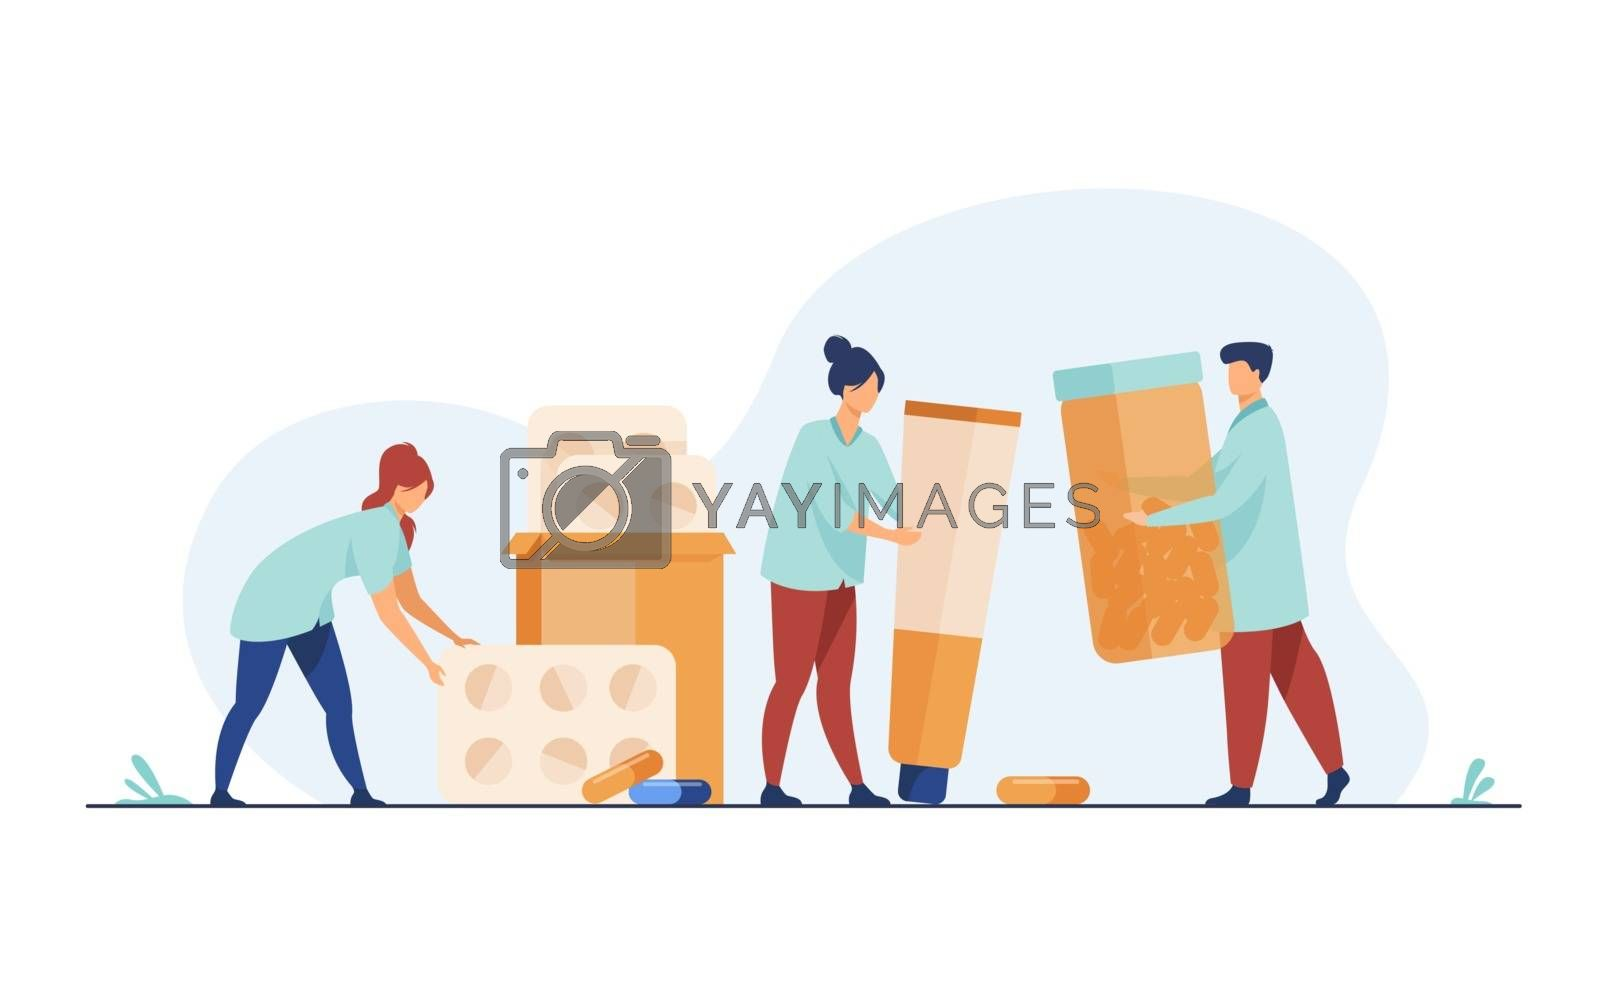 Pharmacists working with blisters of pills, bottle of drugs, tube of ointments. Medical employees working in drug store. Vector illustration for medicine, pharmacy, medicaments, drugstore concept